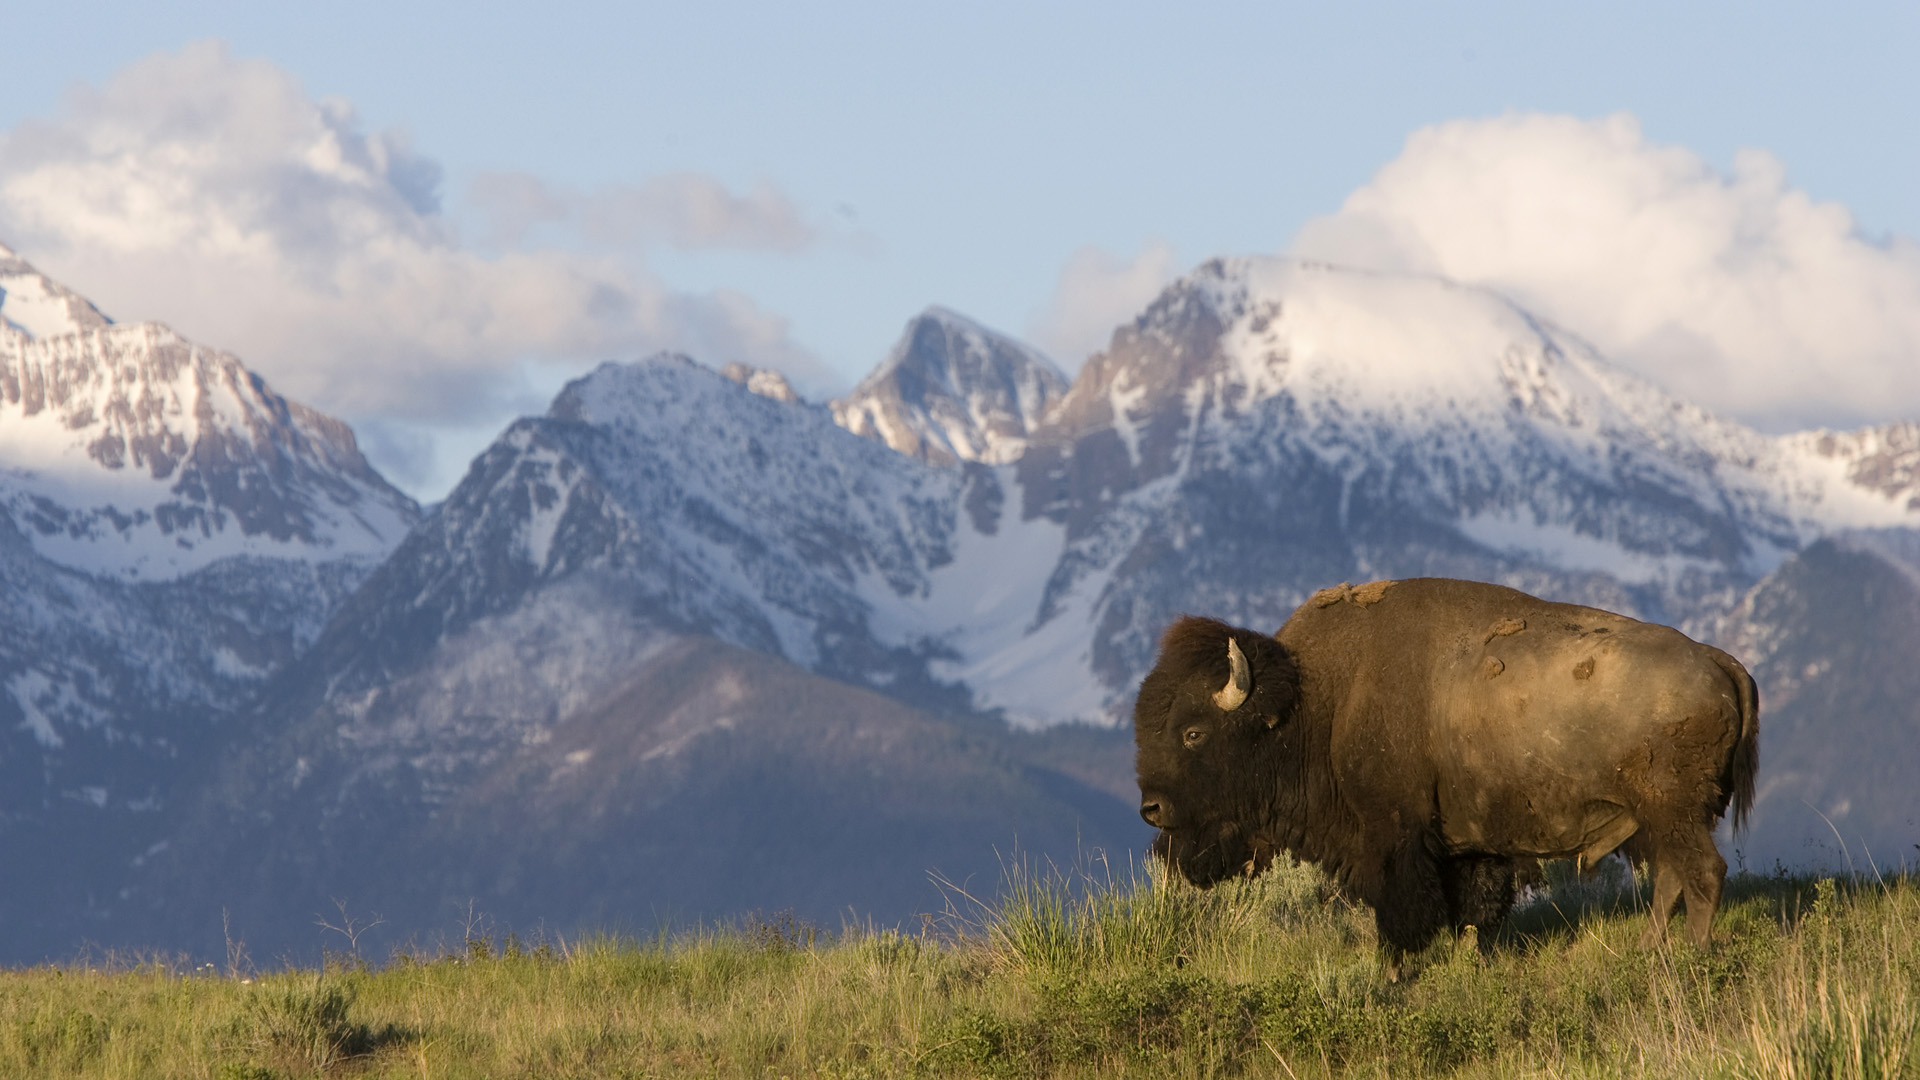 American Bison (Bison bison) bull standing against the Mission Mountains, Moise, Montana